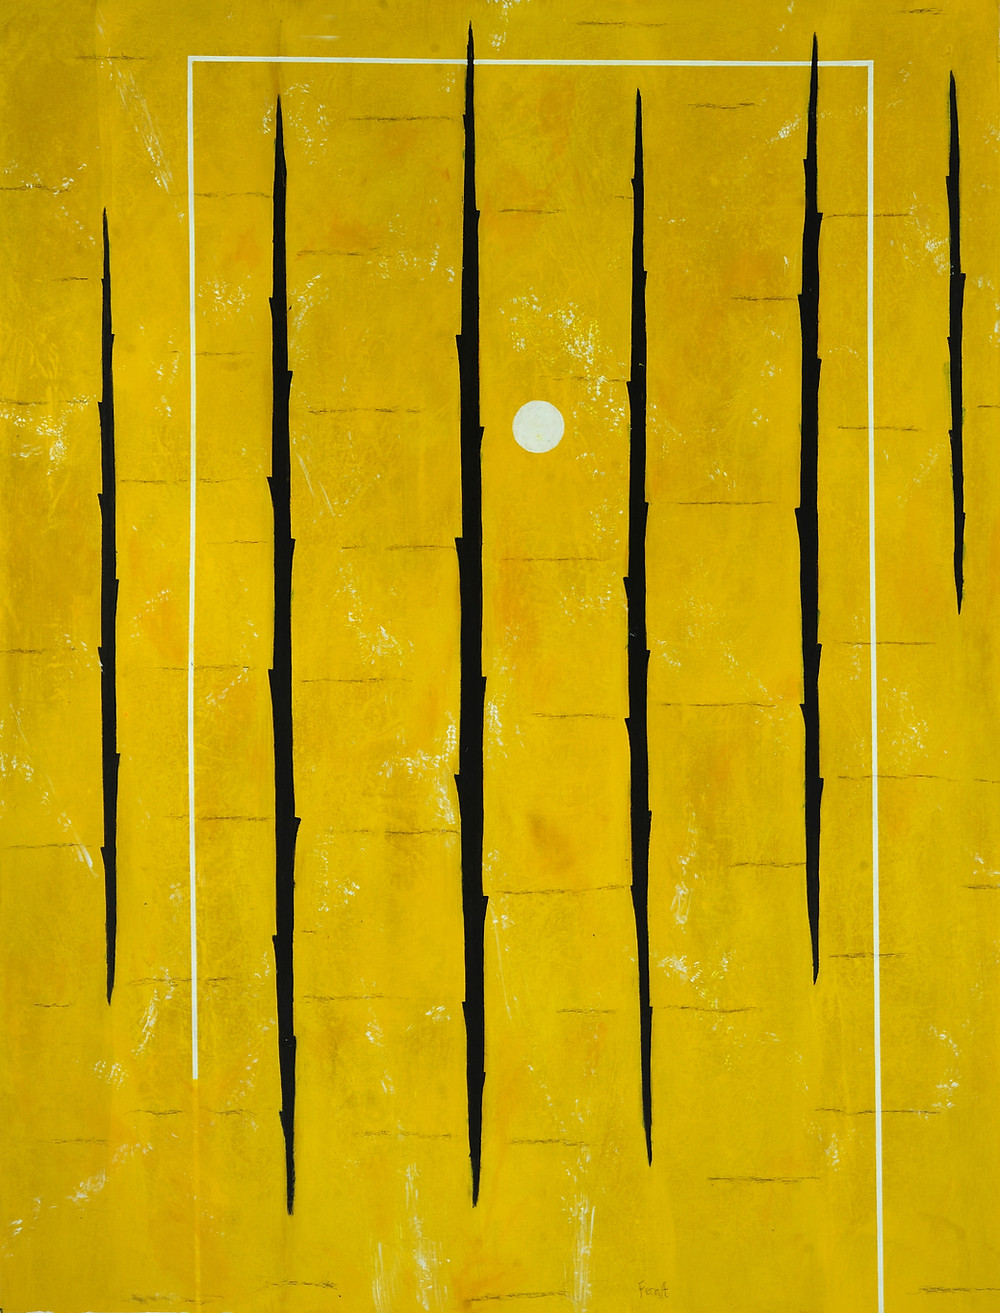 Stakes in Yellow, 2019, acrylic on canvas, 66 x 50 in (168 x 127 cm)